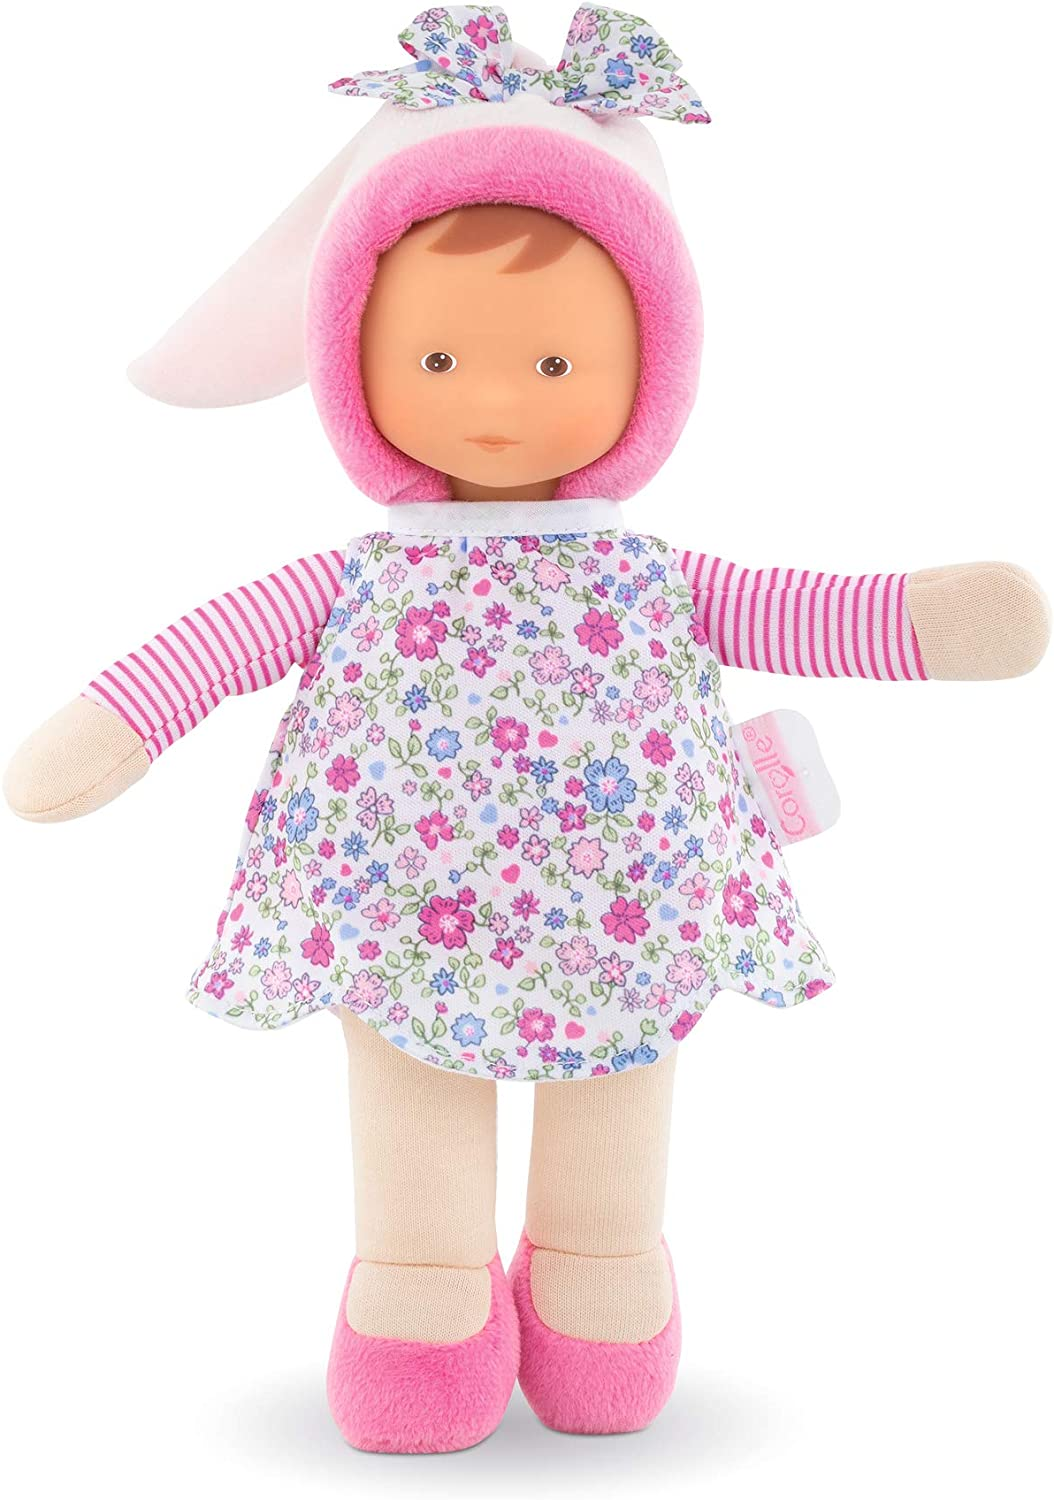 Corolle - Miss Corolle's Flowers - Mon Doudou Soft-body Baby Doll with Vanilla Scent, 9.5